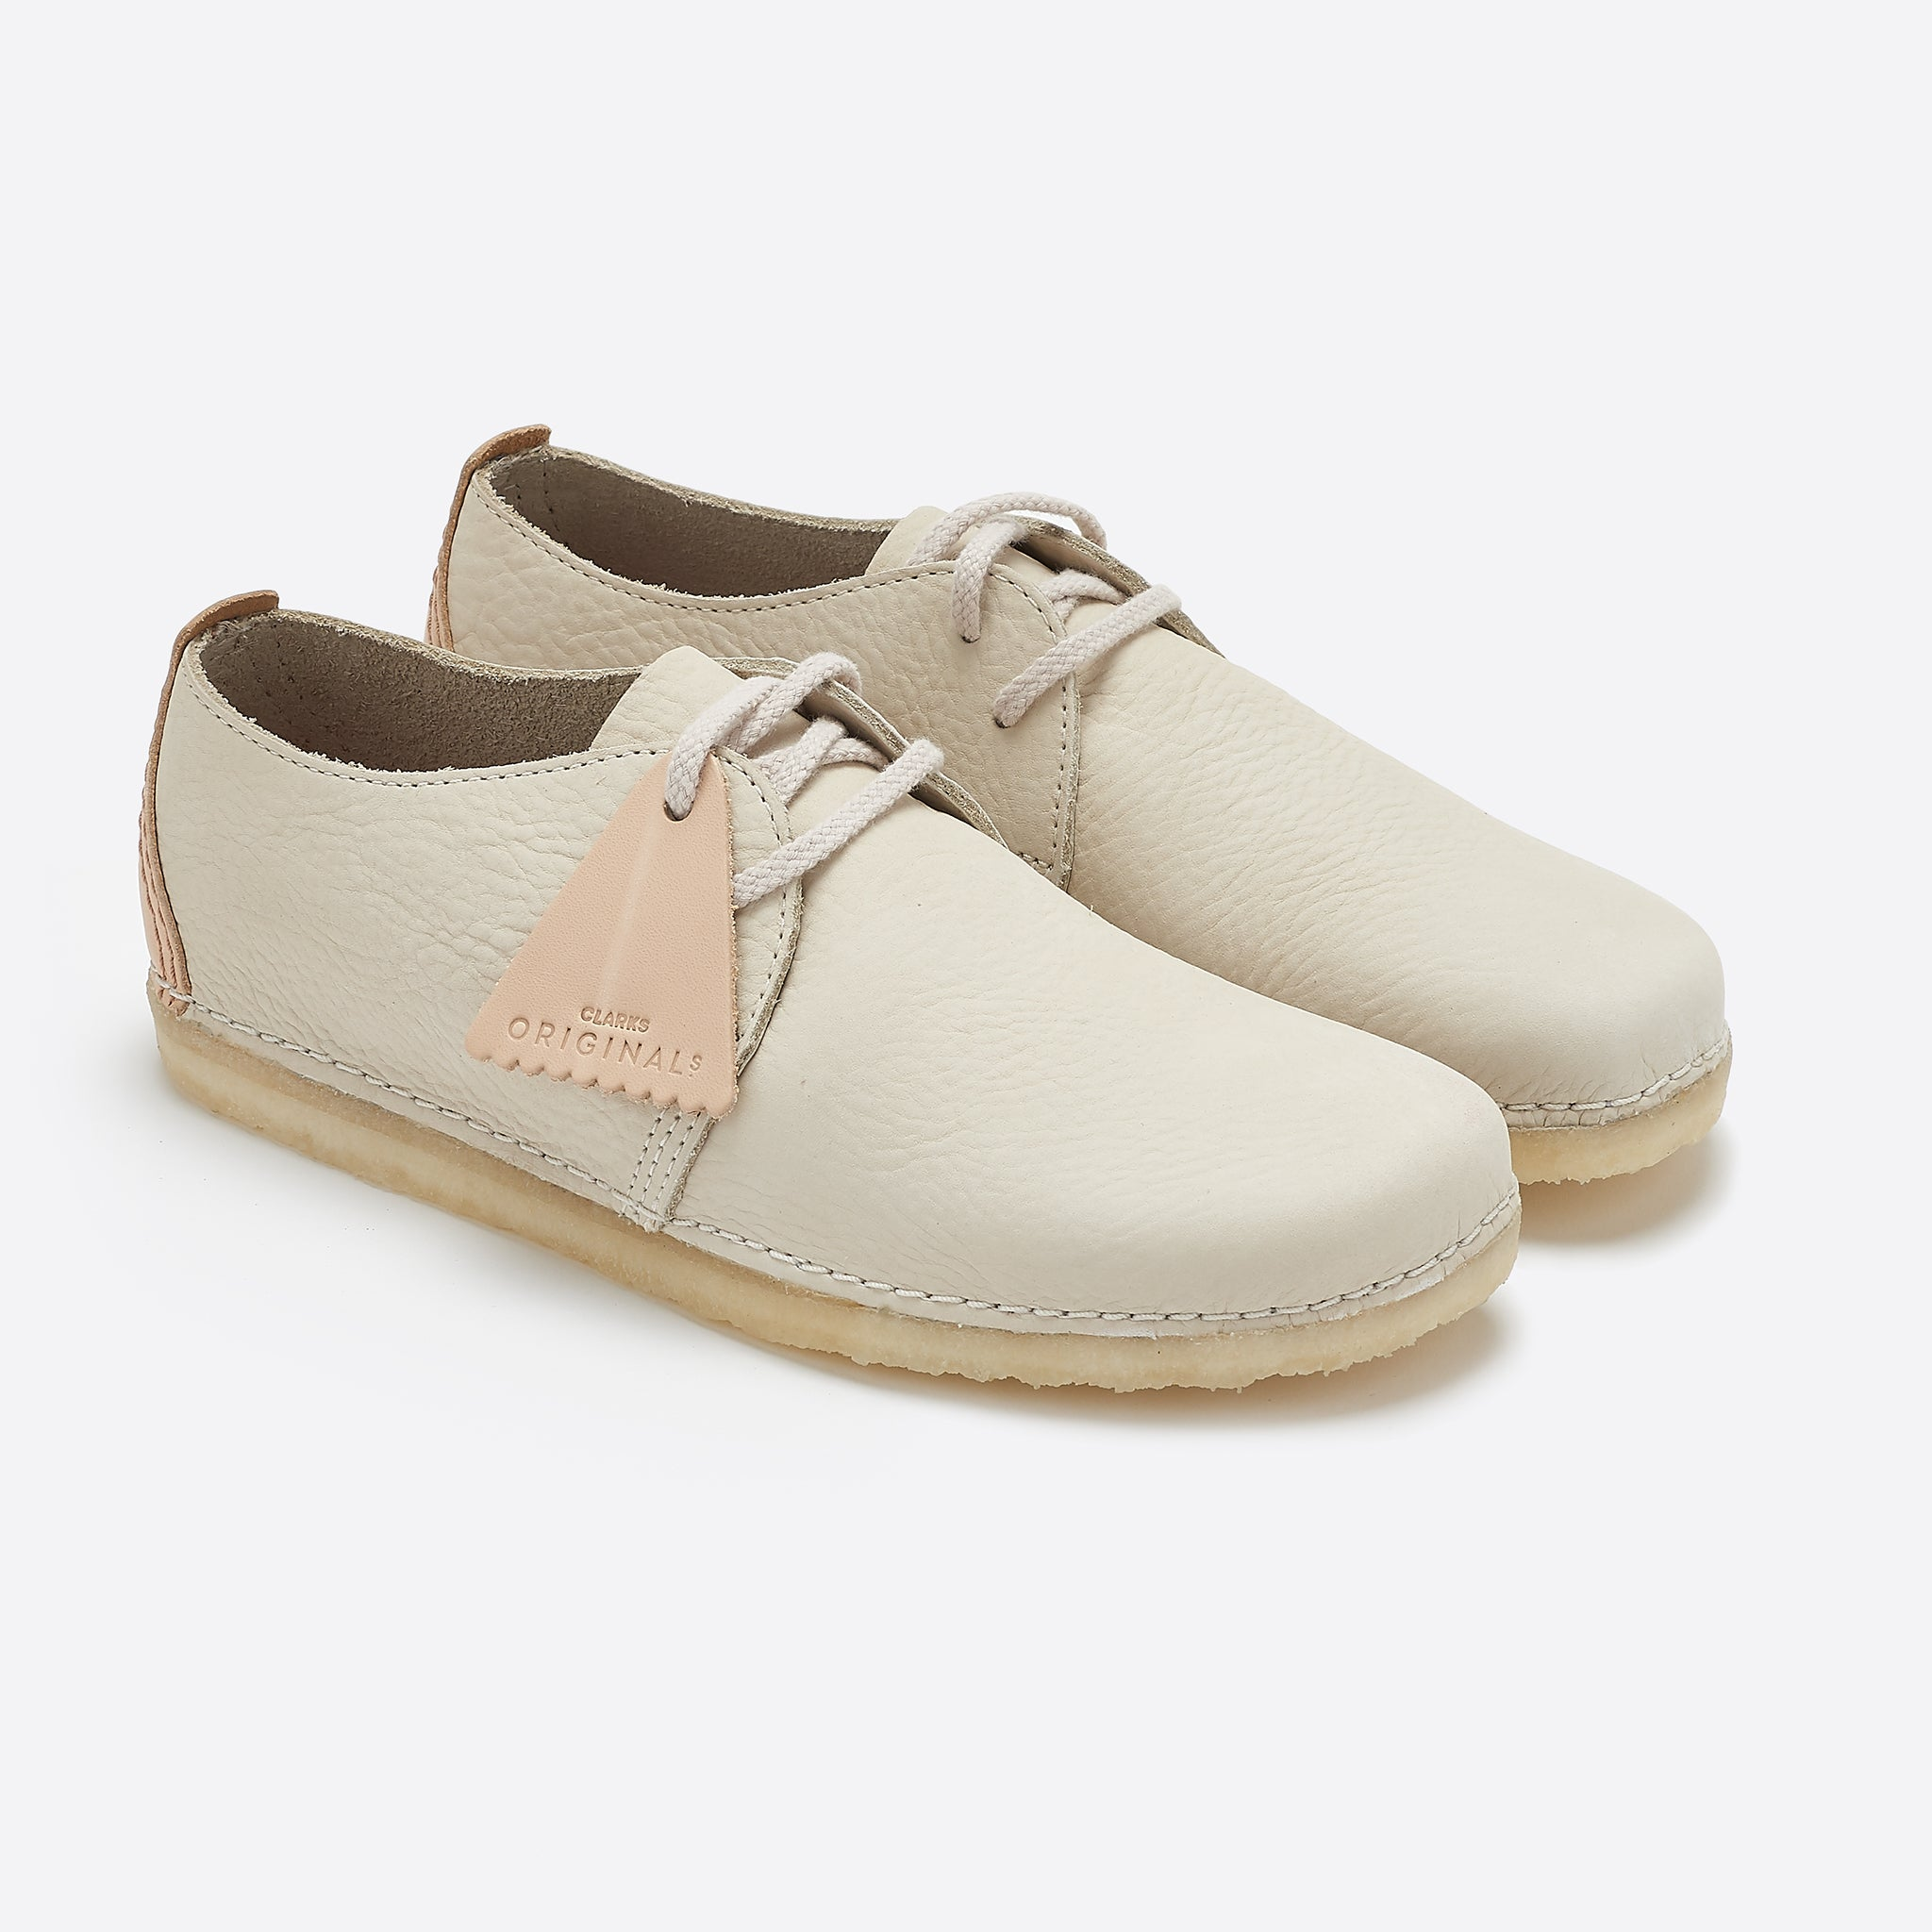 Clarks Original Ashton Boot in Off White Nubuck